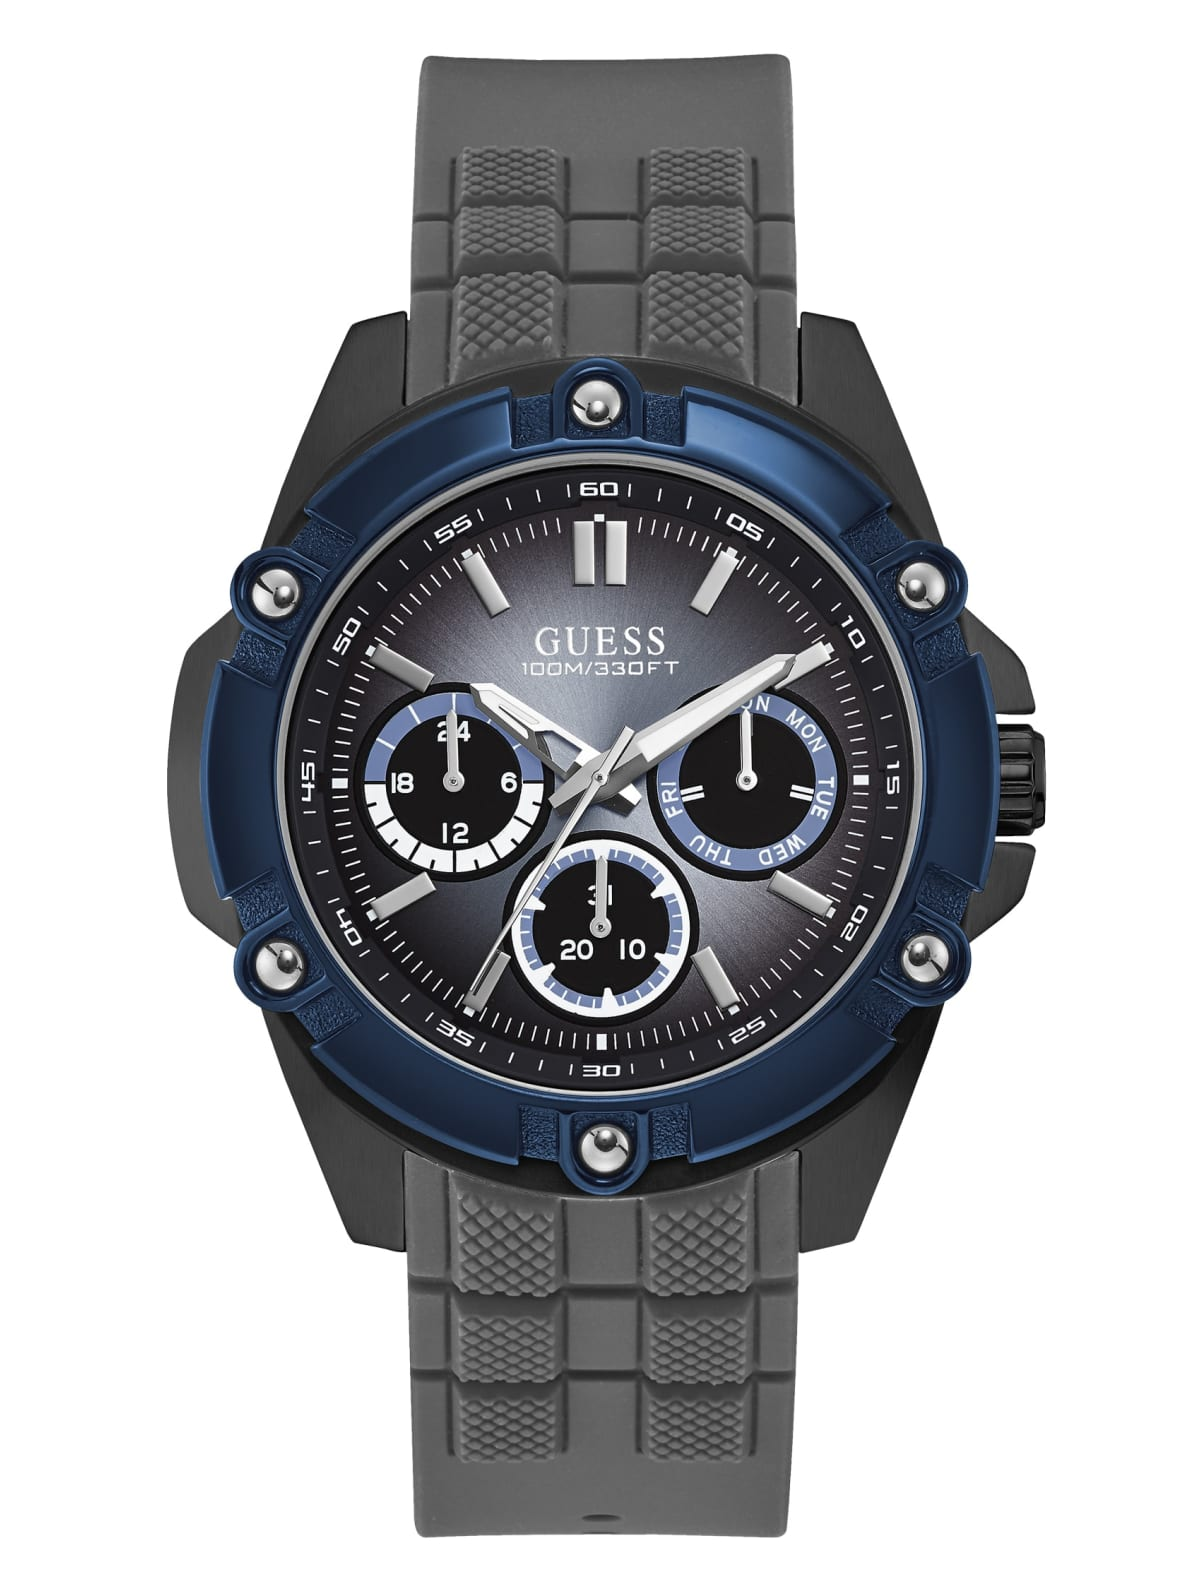 Parana River esso Centro  Blue and Grey Silicone Multifunction Sport Watch | GUESS Canada